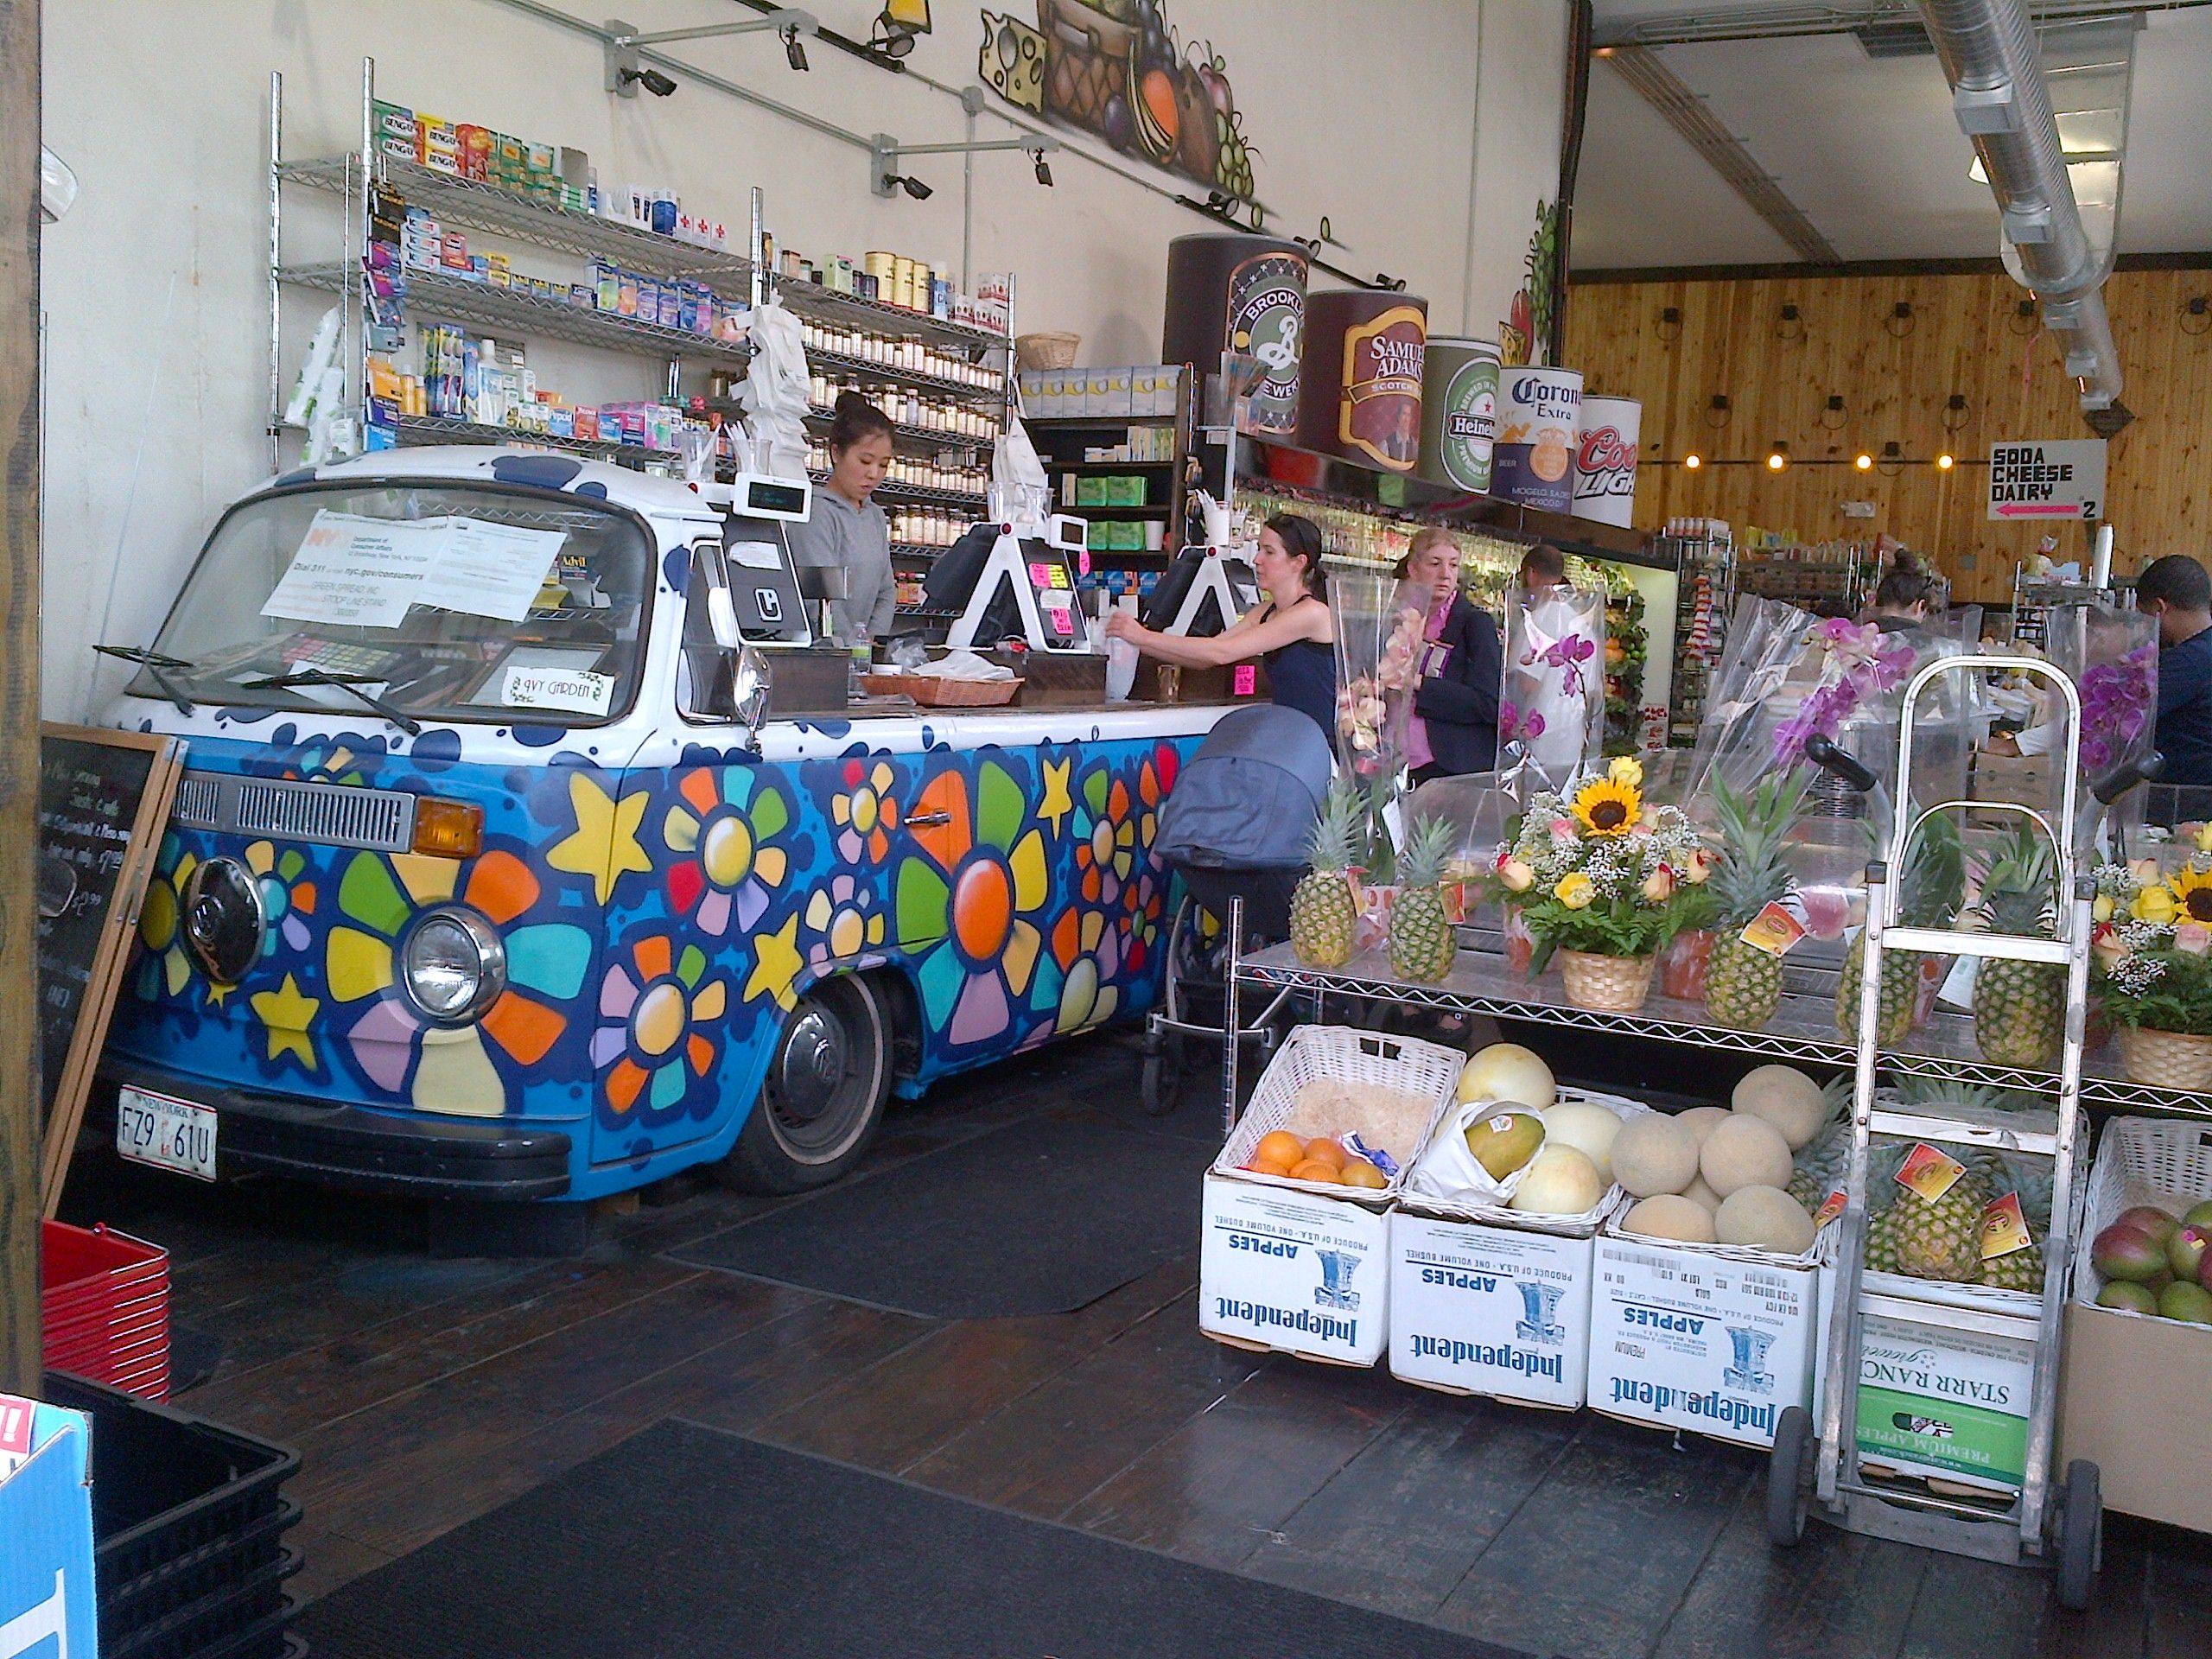 A Very Cool Store Counter Made From A Recycled VW Bus Life In NYC Vw Bus Store Counter Store